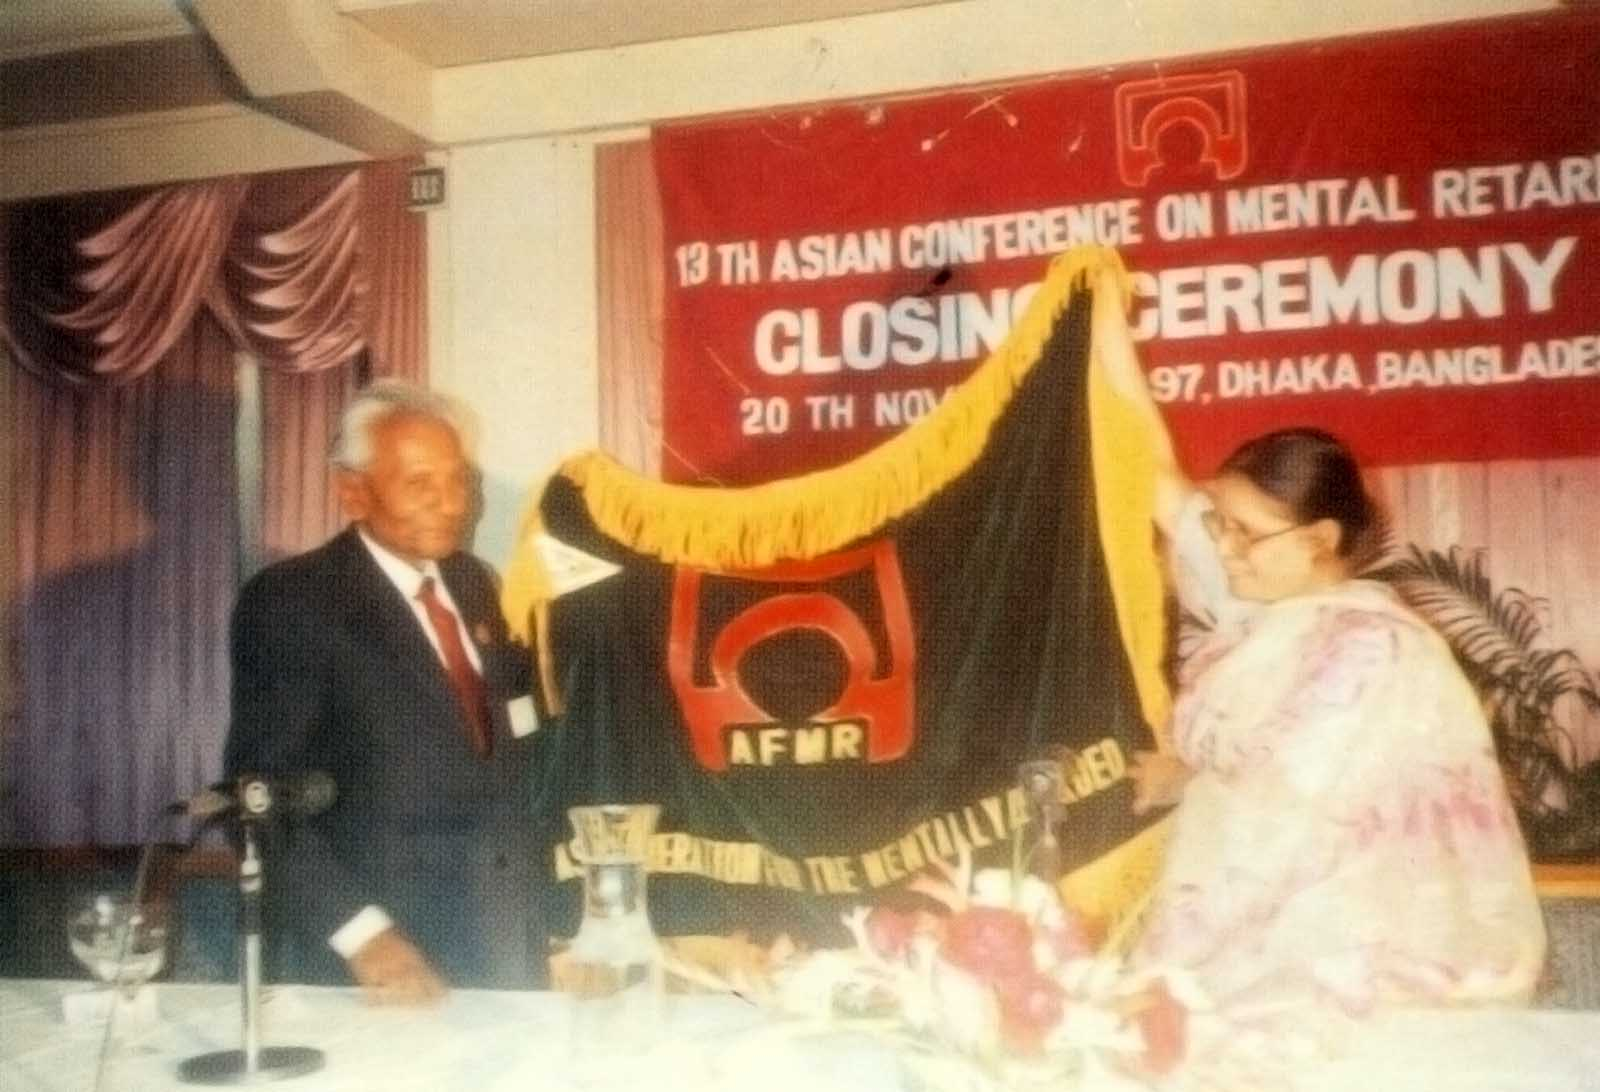 ACMR President handing over ACMR Flag to the would be ACMR President of Nepal